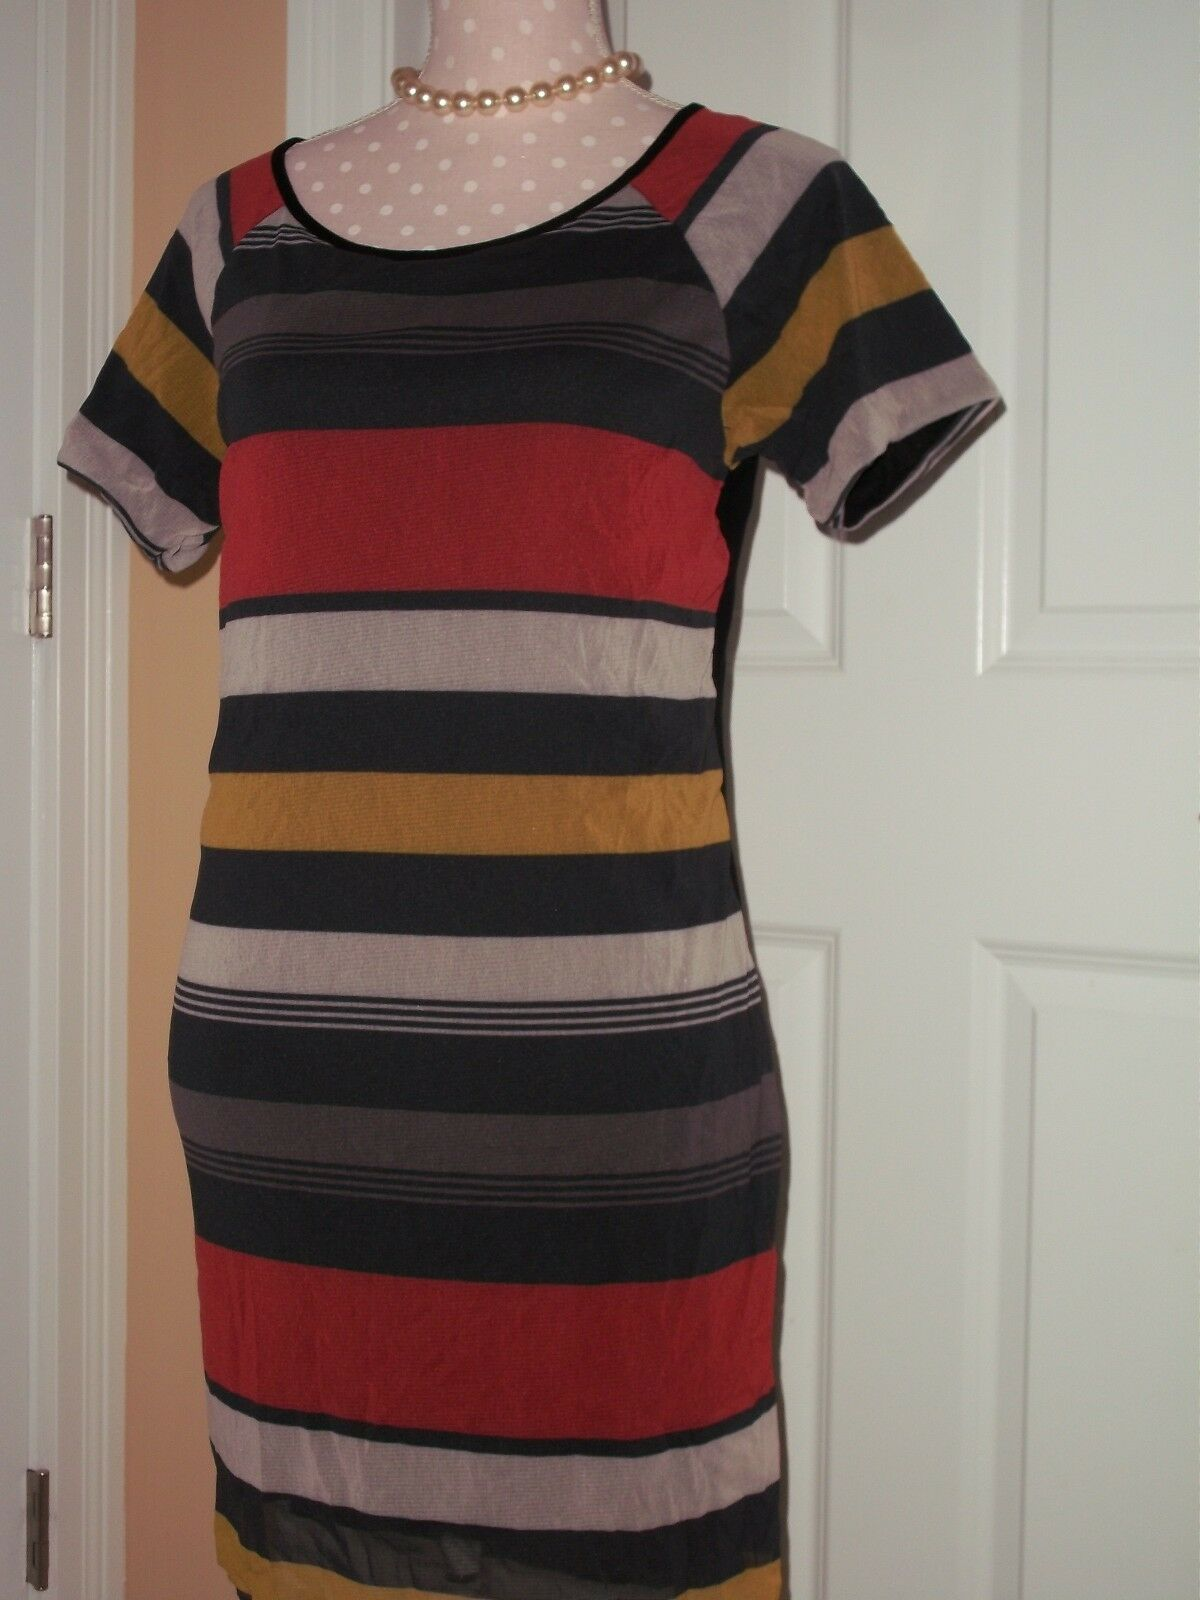 Womens Weston Wear dress striped dress Sz L MADE IN USA